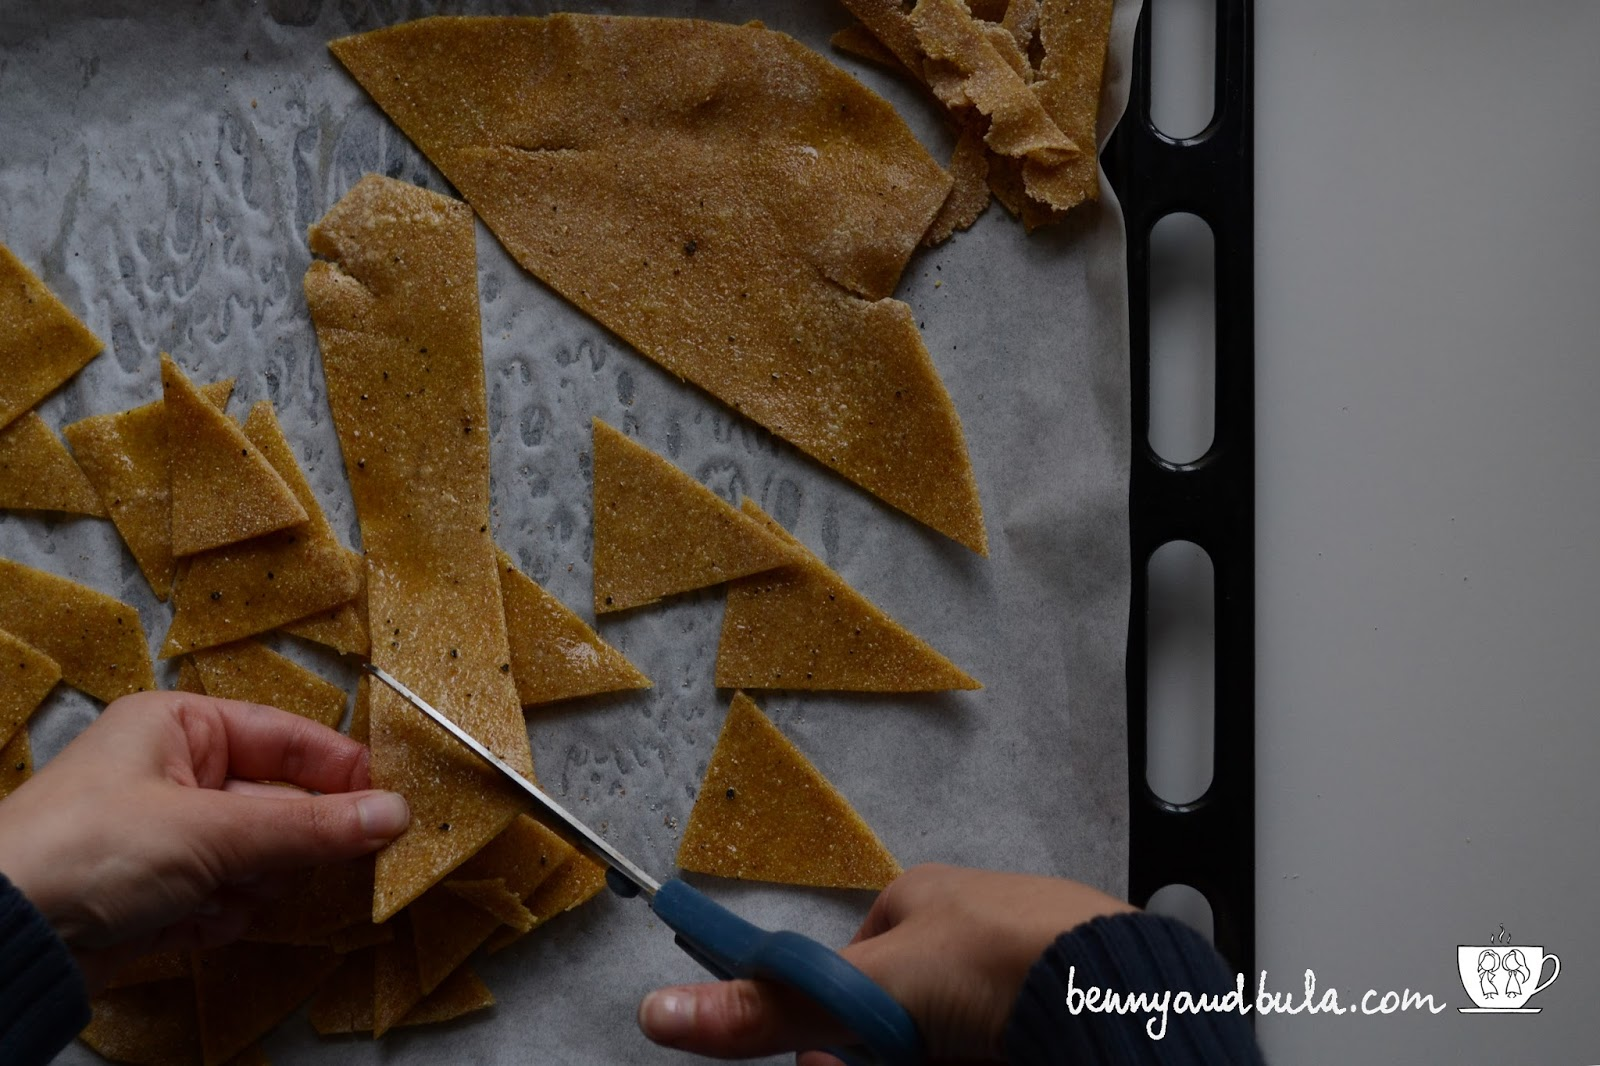 Ricetta Nachos light al forno/Baked corn tortilla chips recipe